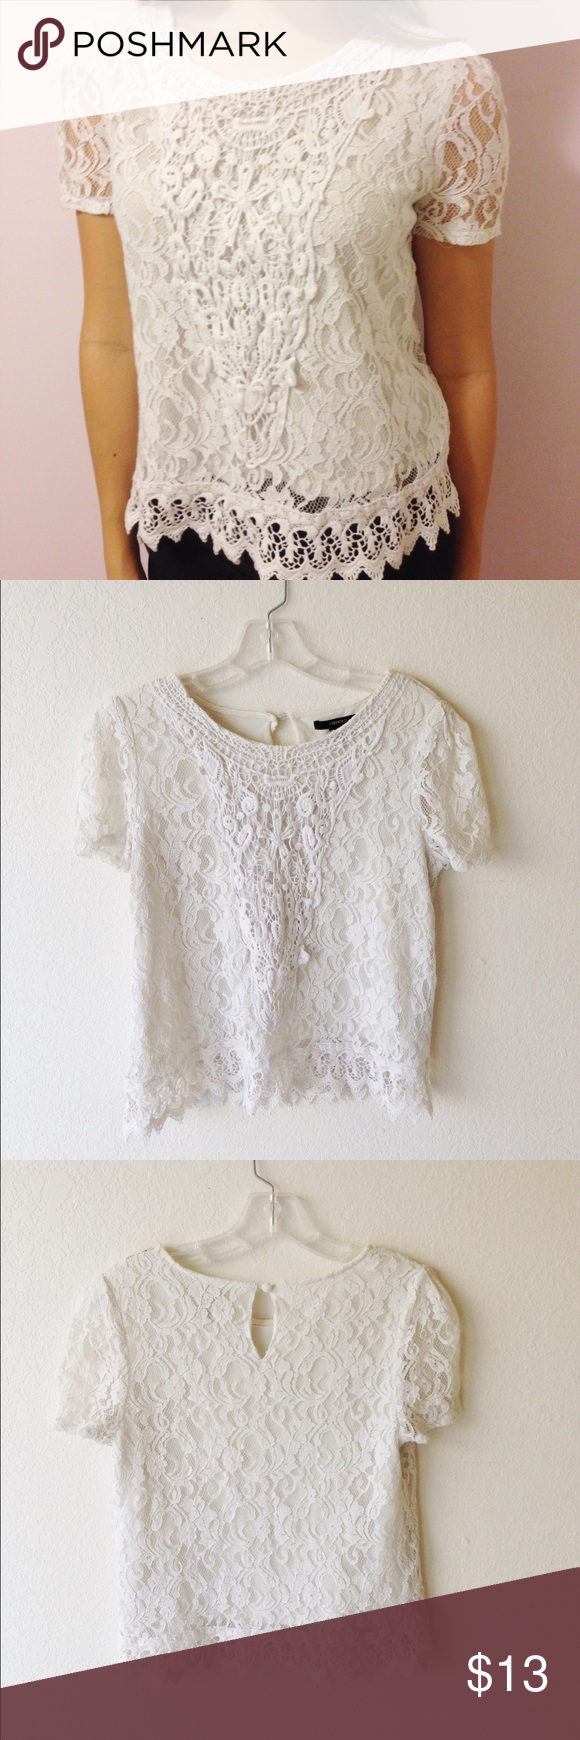 White lace blouse Super cute white lace shirt. Not see through at all because of the lining underneath. In good condition. Has no stains or tears. Is a size medium but may fit a small as well. I love this shirt and I got a bunch of compliments on it! Forever 21 Tops Blouses